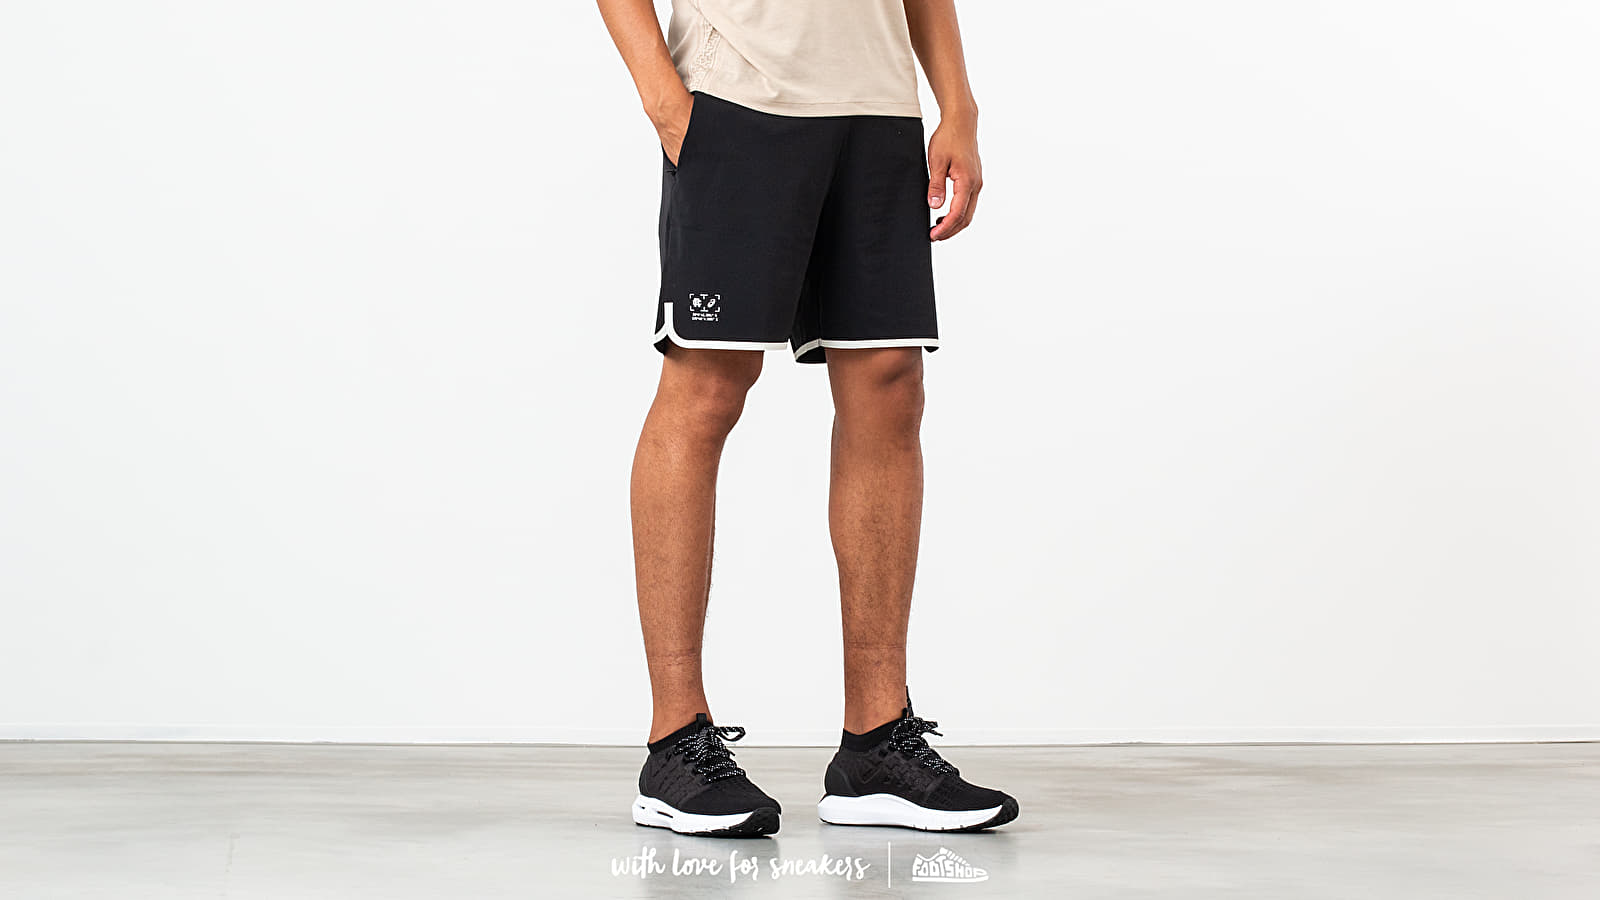 Asics x Reigning Champ A 7in Run Shorts